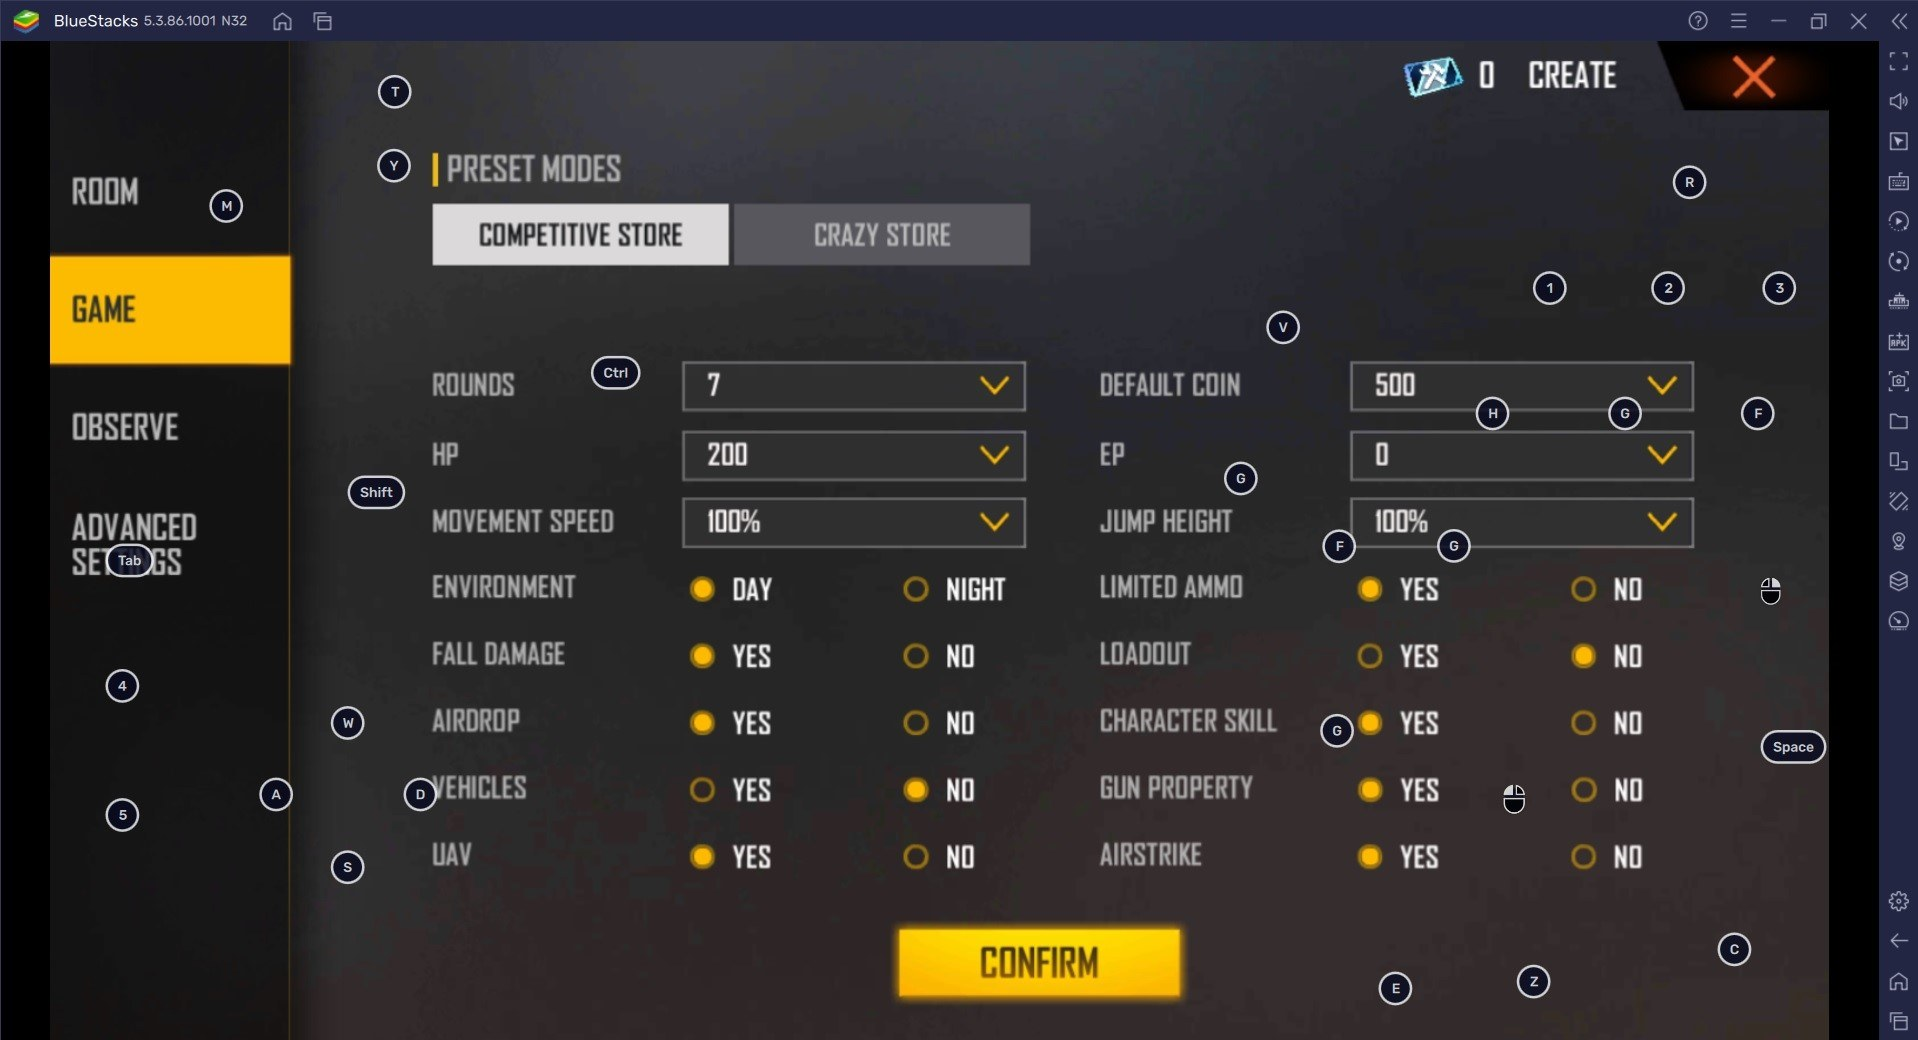 Free Fire Max Craftland Guide: Make Your Own Maps and Fight Now